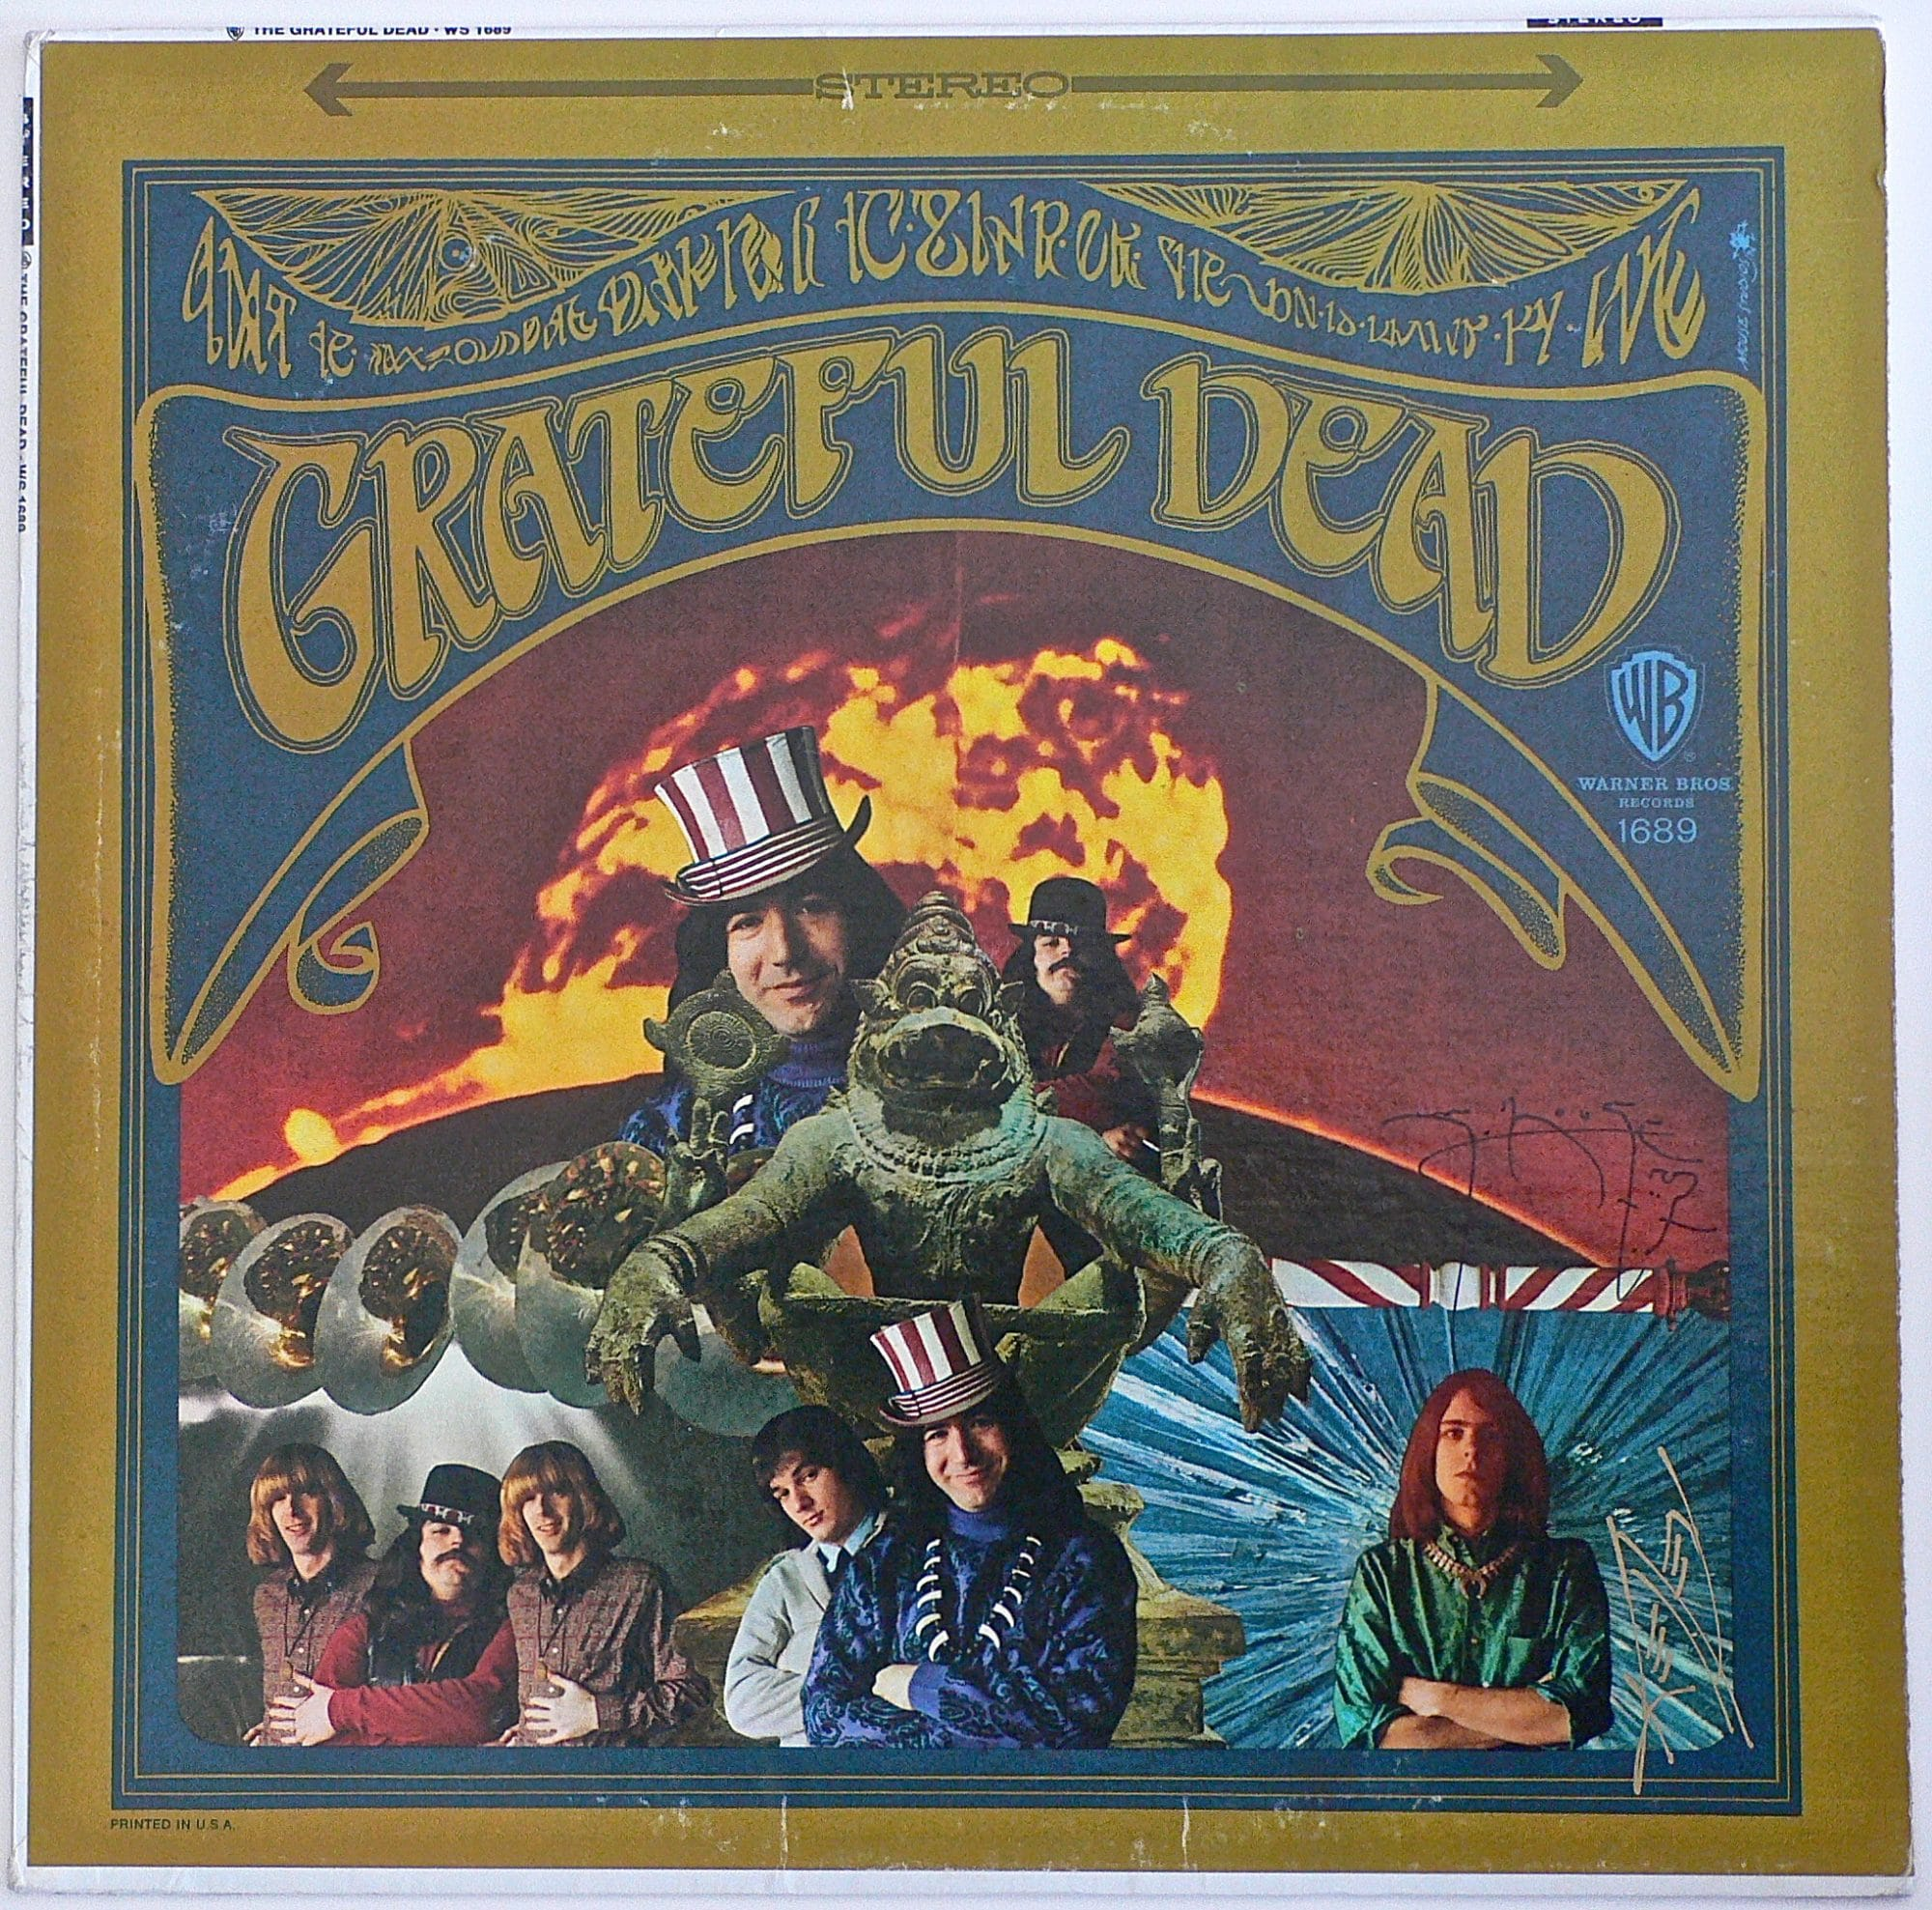 grateful dead dating website My top 5 grateful dead lyrics but as a second-generation grateful yid with scores of concerts under my belt please visit his website at drjacoblfreedmancom.